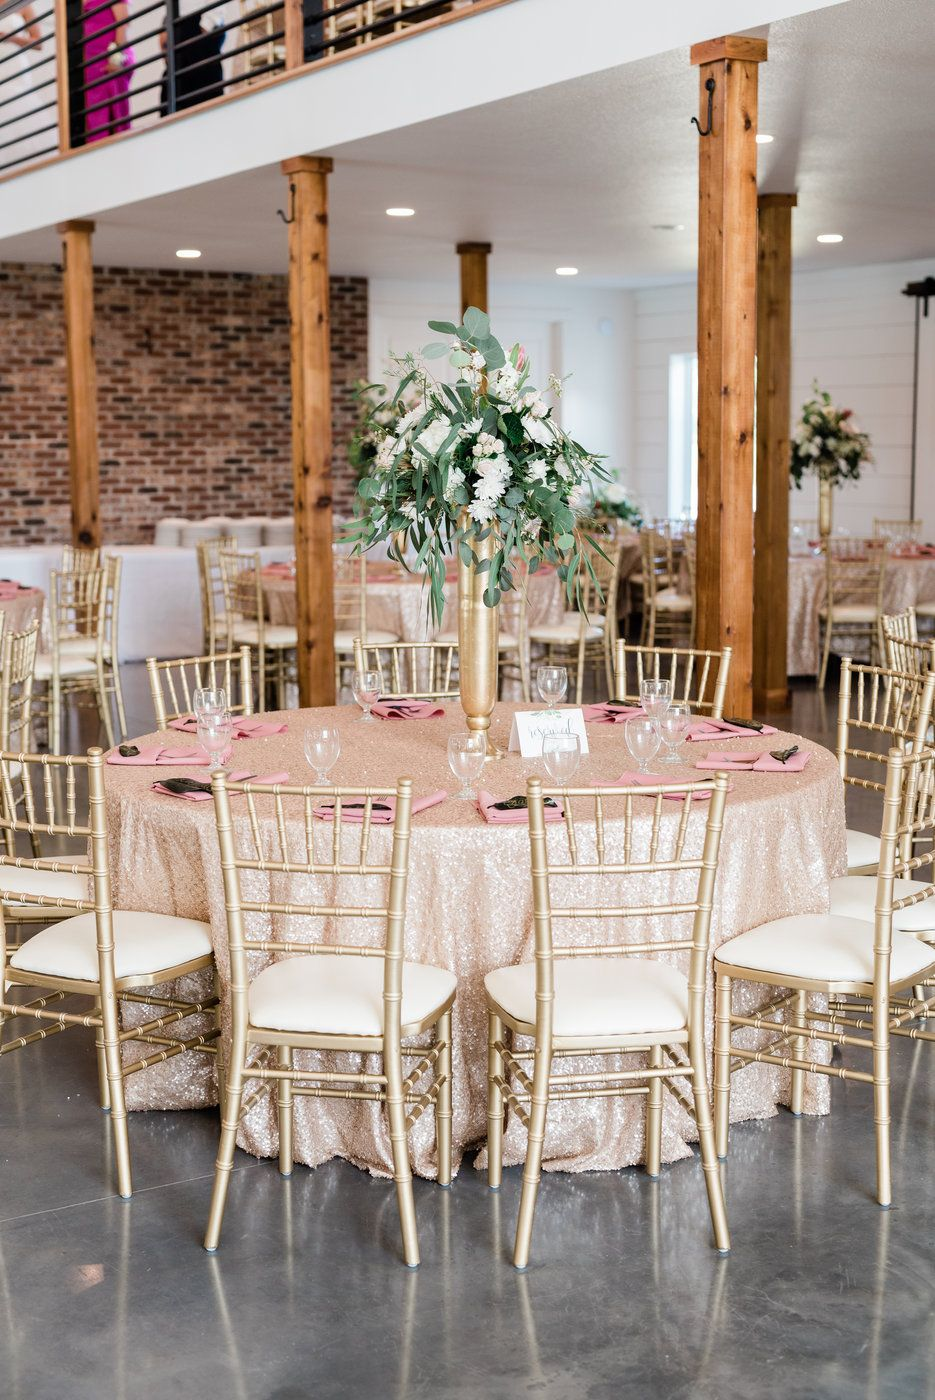 A main floor that seats up to 180 guests with a brick ...